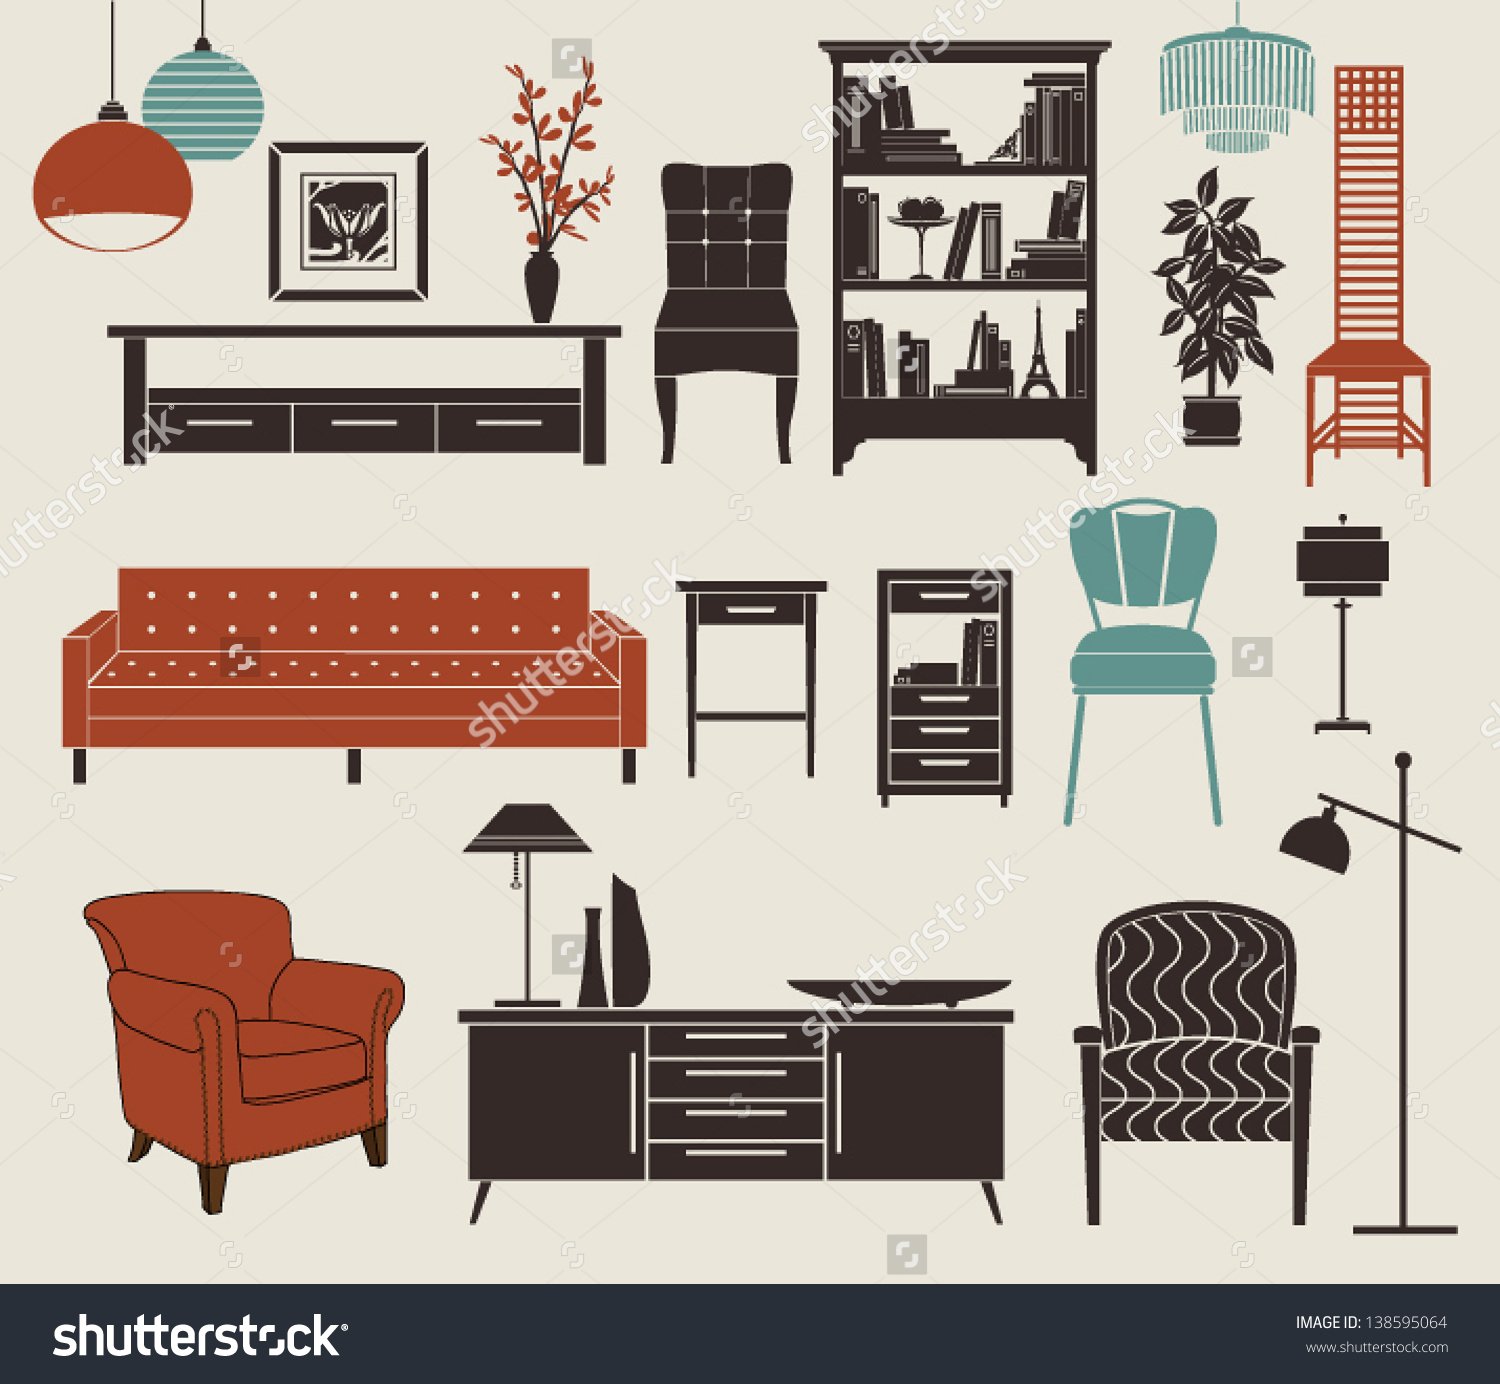 Home accessories clipart clipground for Home furniture accessories